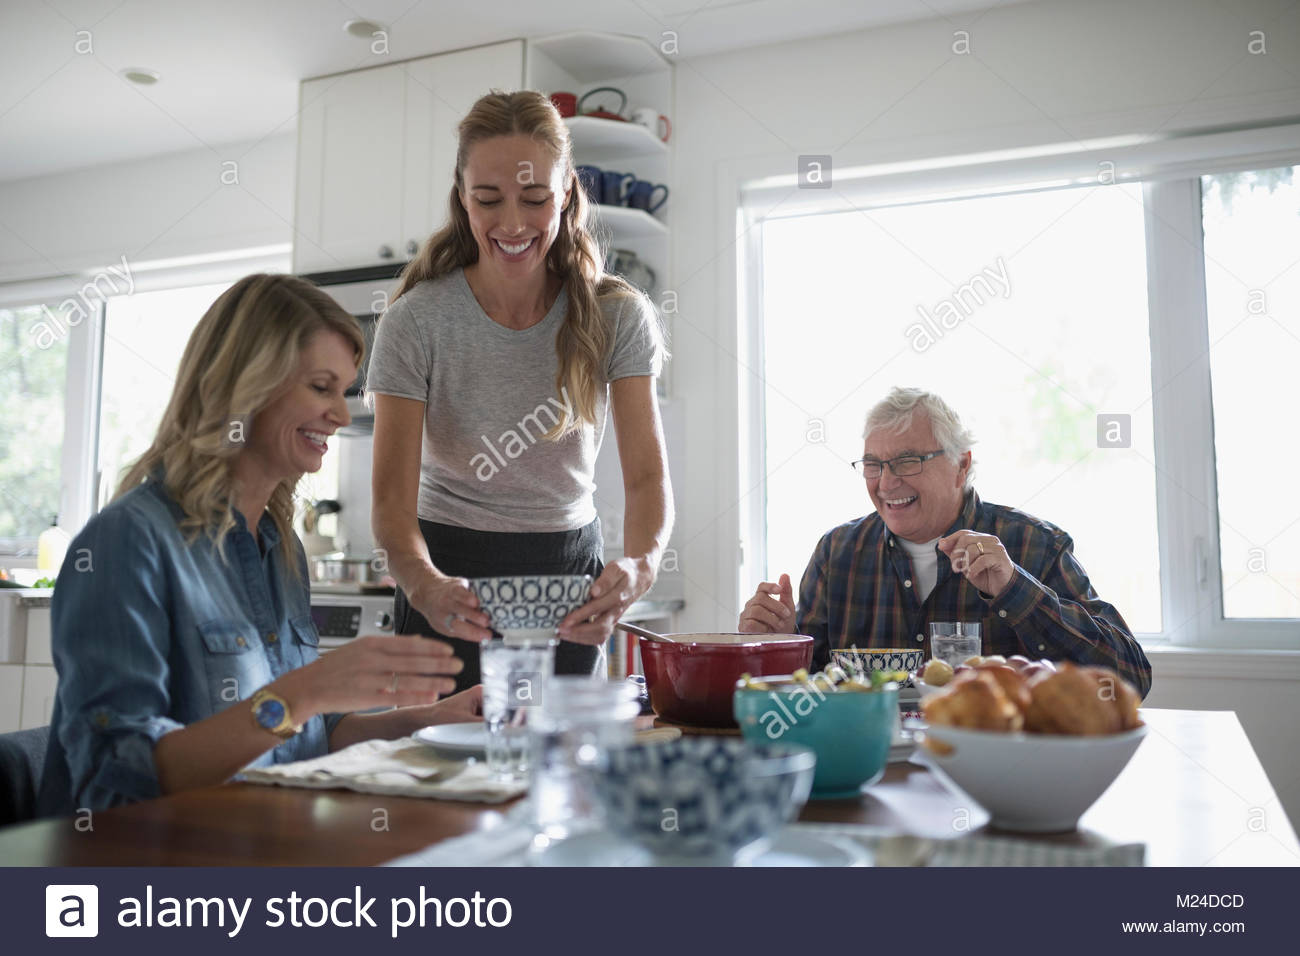 Smiling daughters and senior father eating at kitchen table - Stock Image